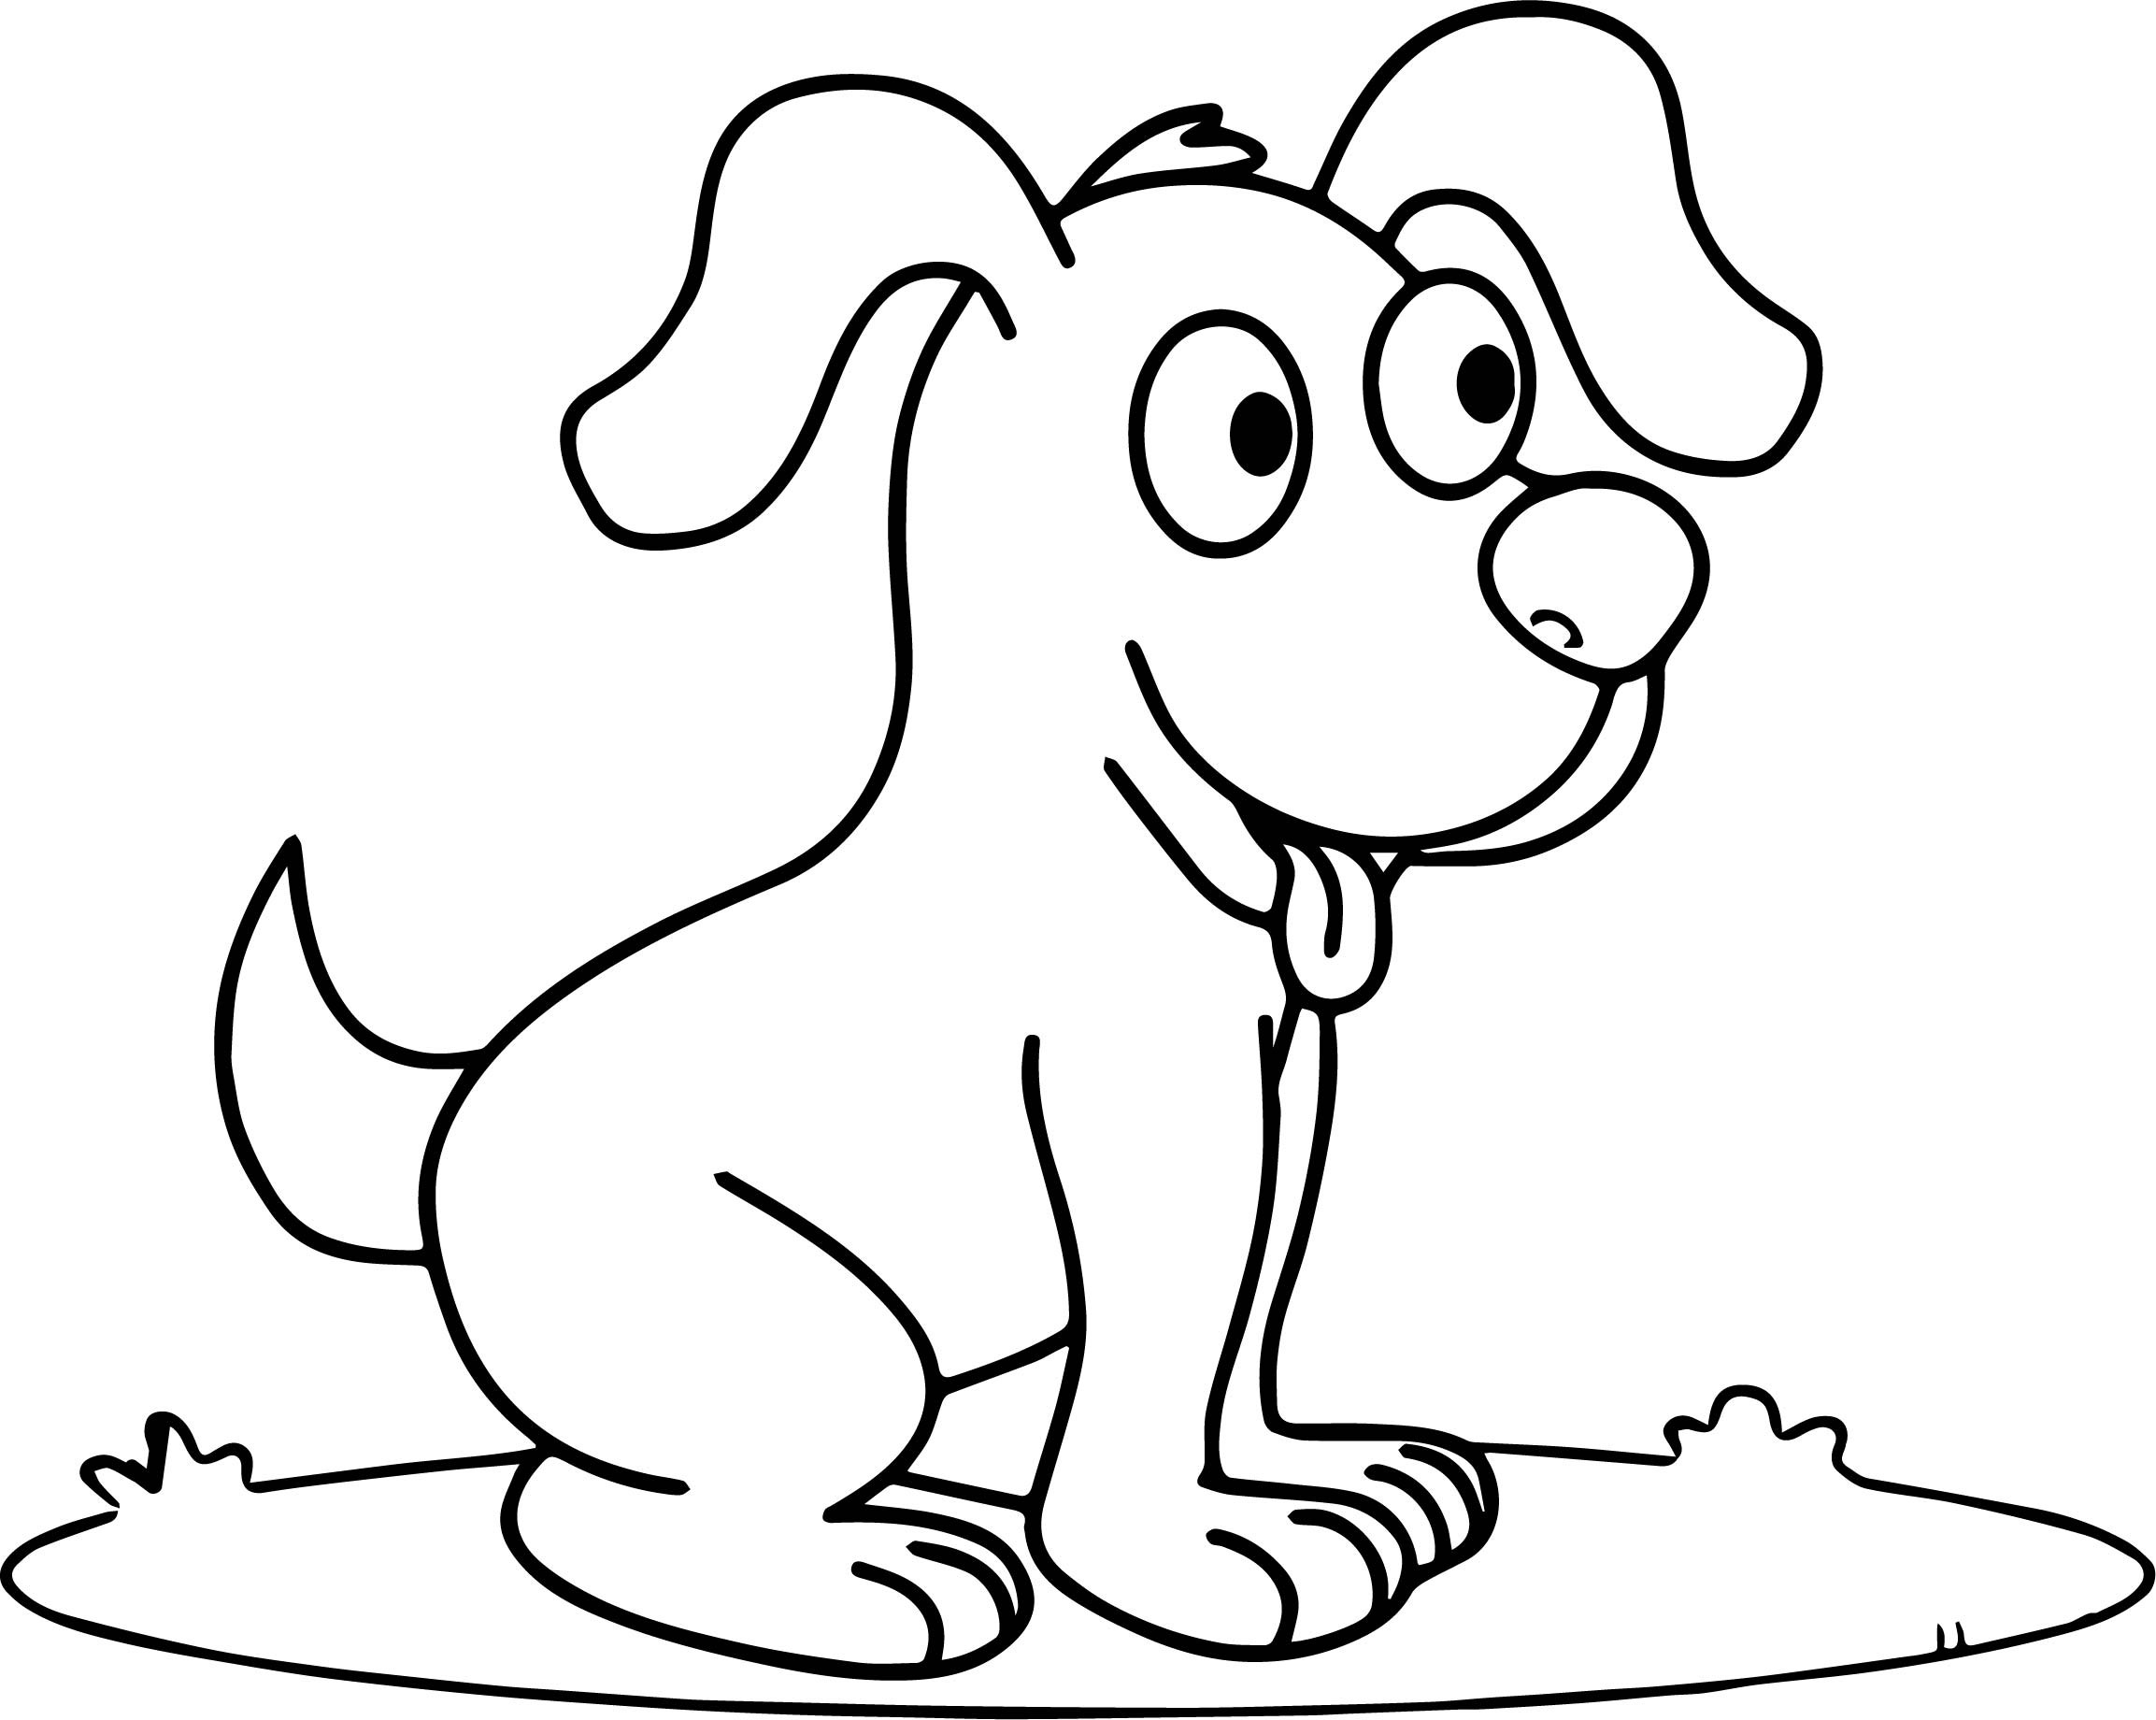 dogs colouring newfoundland dog coloring page at getcoloringscom free colouring dogs